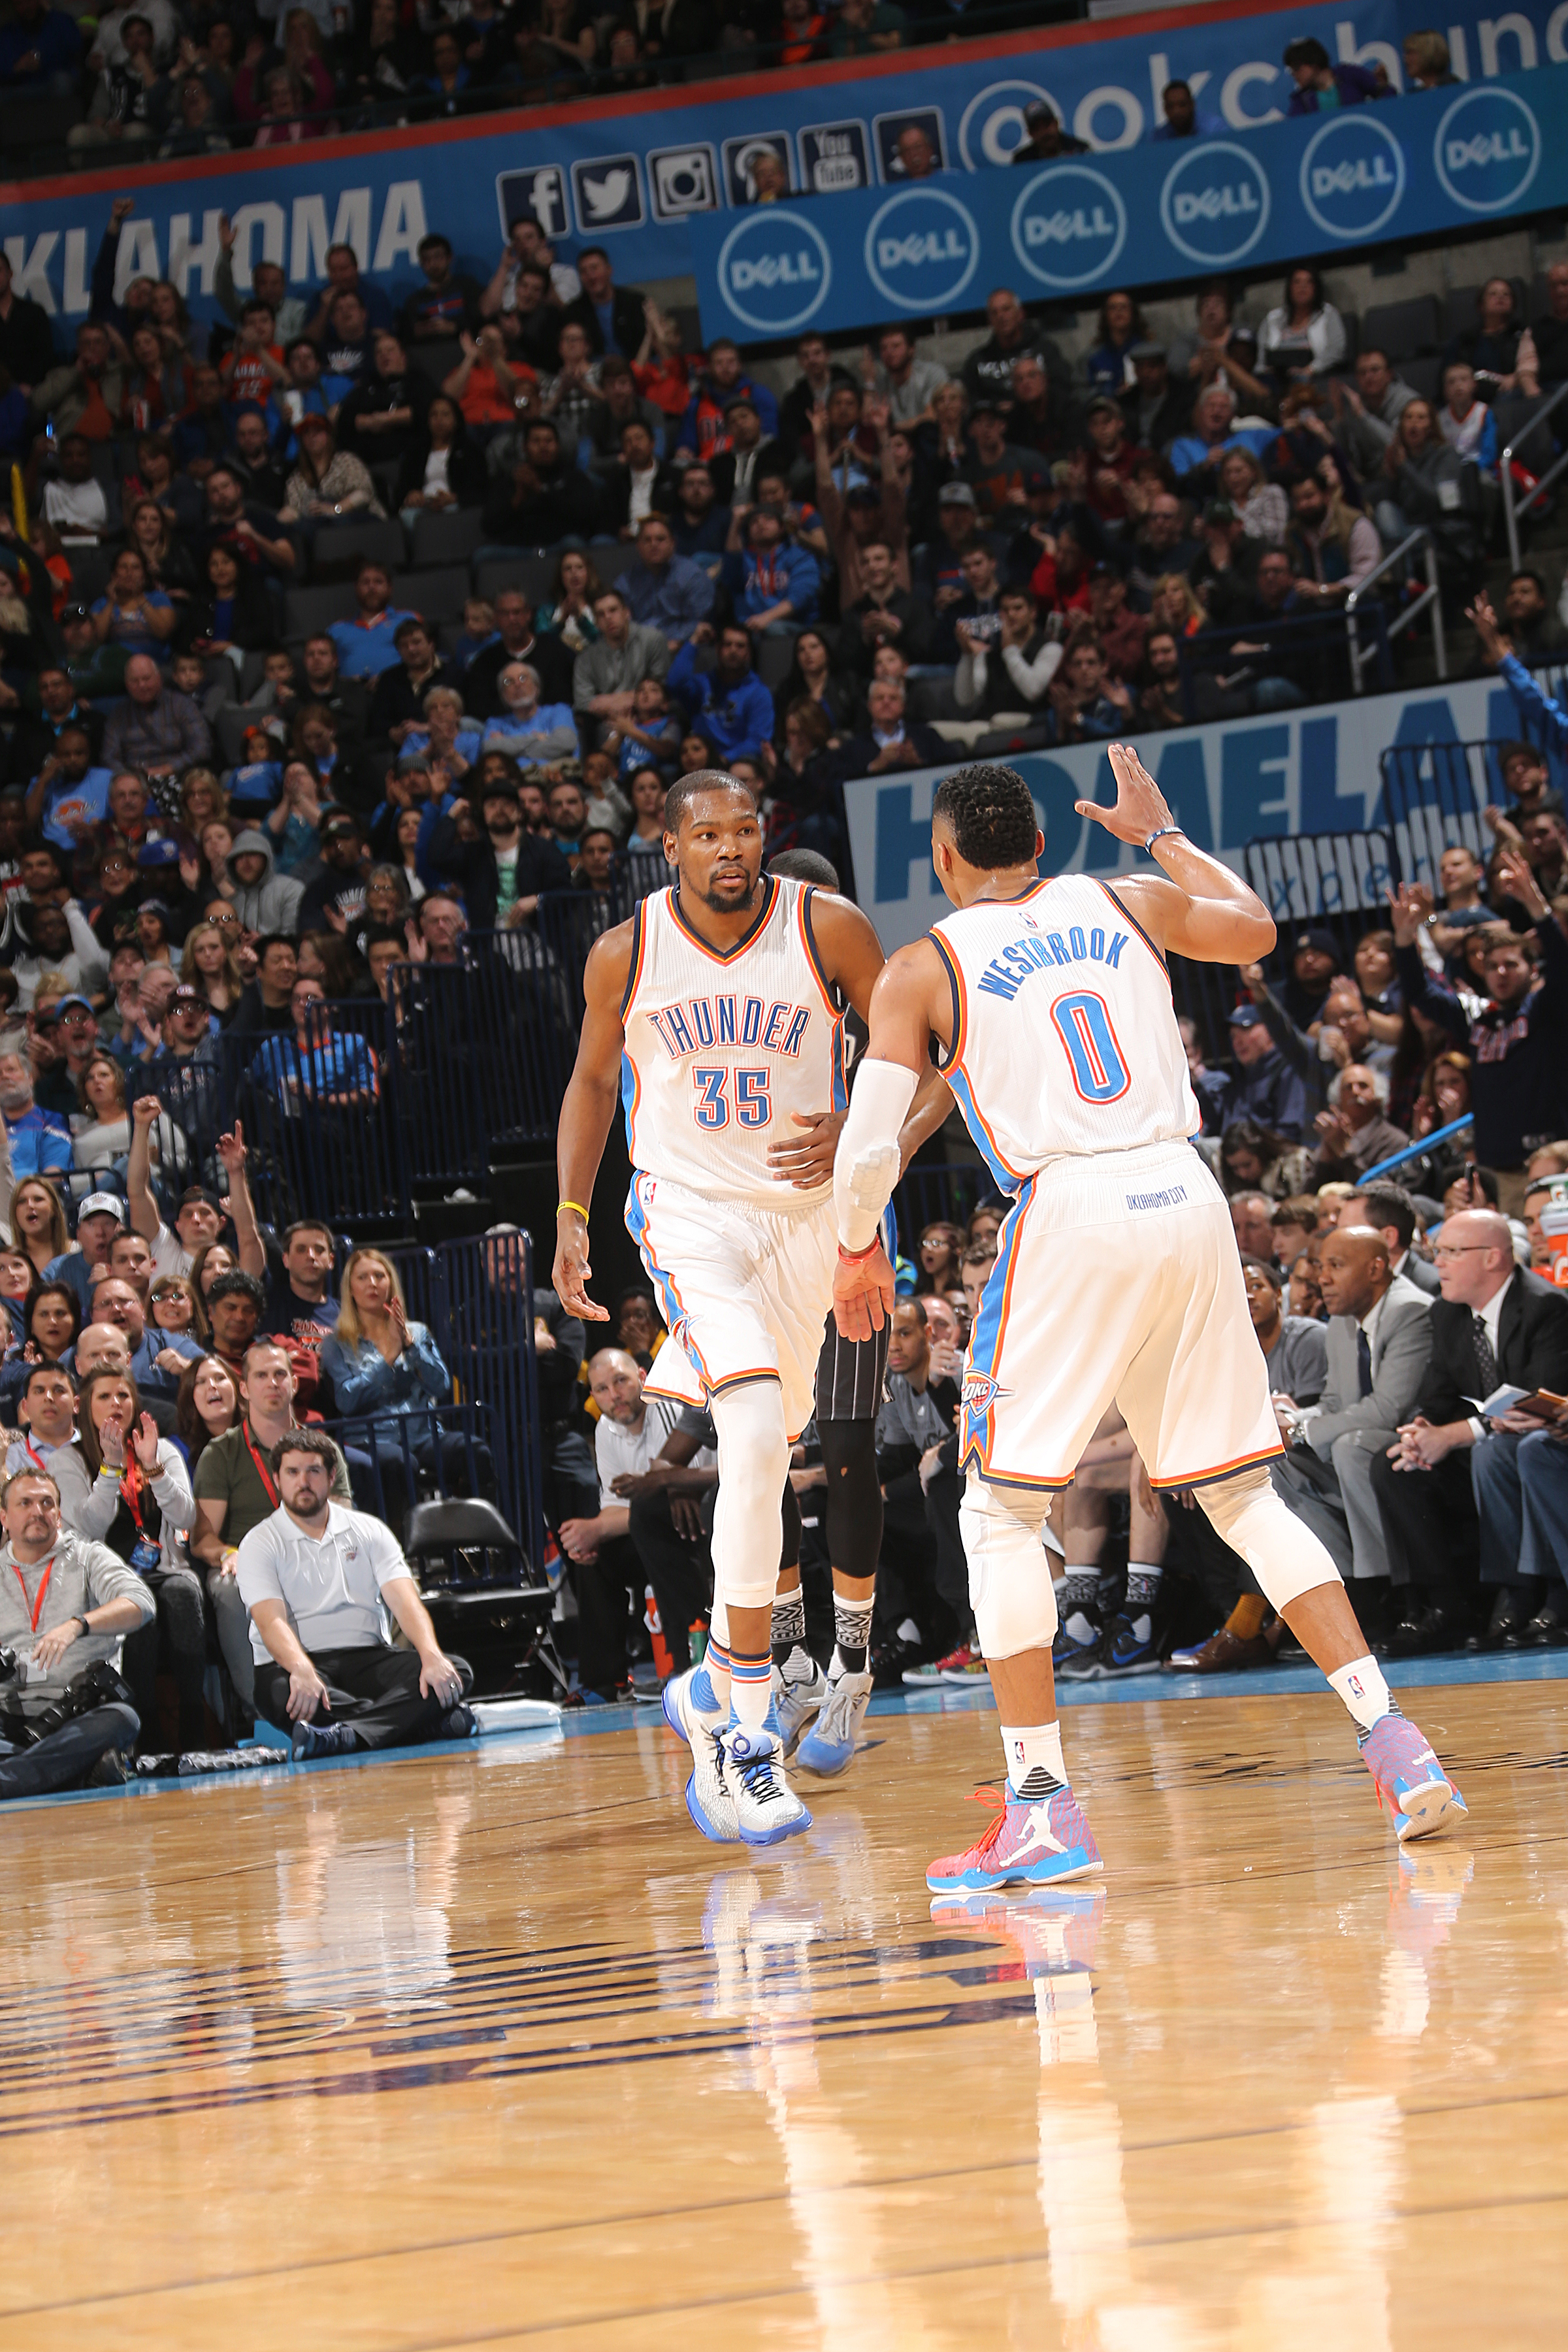 OKLAHOMA CITY, OK- FEBRUARY 3:  Kevin Durant #35 of the Oklahoma City Thunder celebrates with Russell Westbrook #0 of the Oklahoma City Thunder during the game against the Orlando Magic on February 3, 2016 at Chesapeake Energy Arena in Oklahoma City, Okla